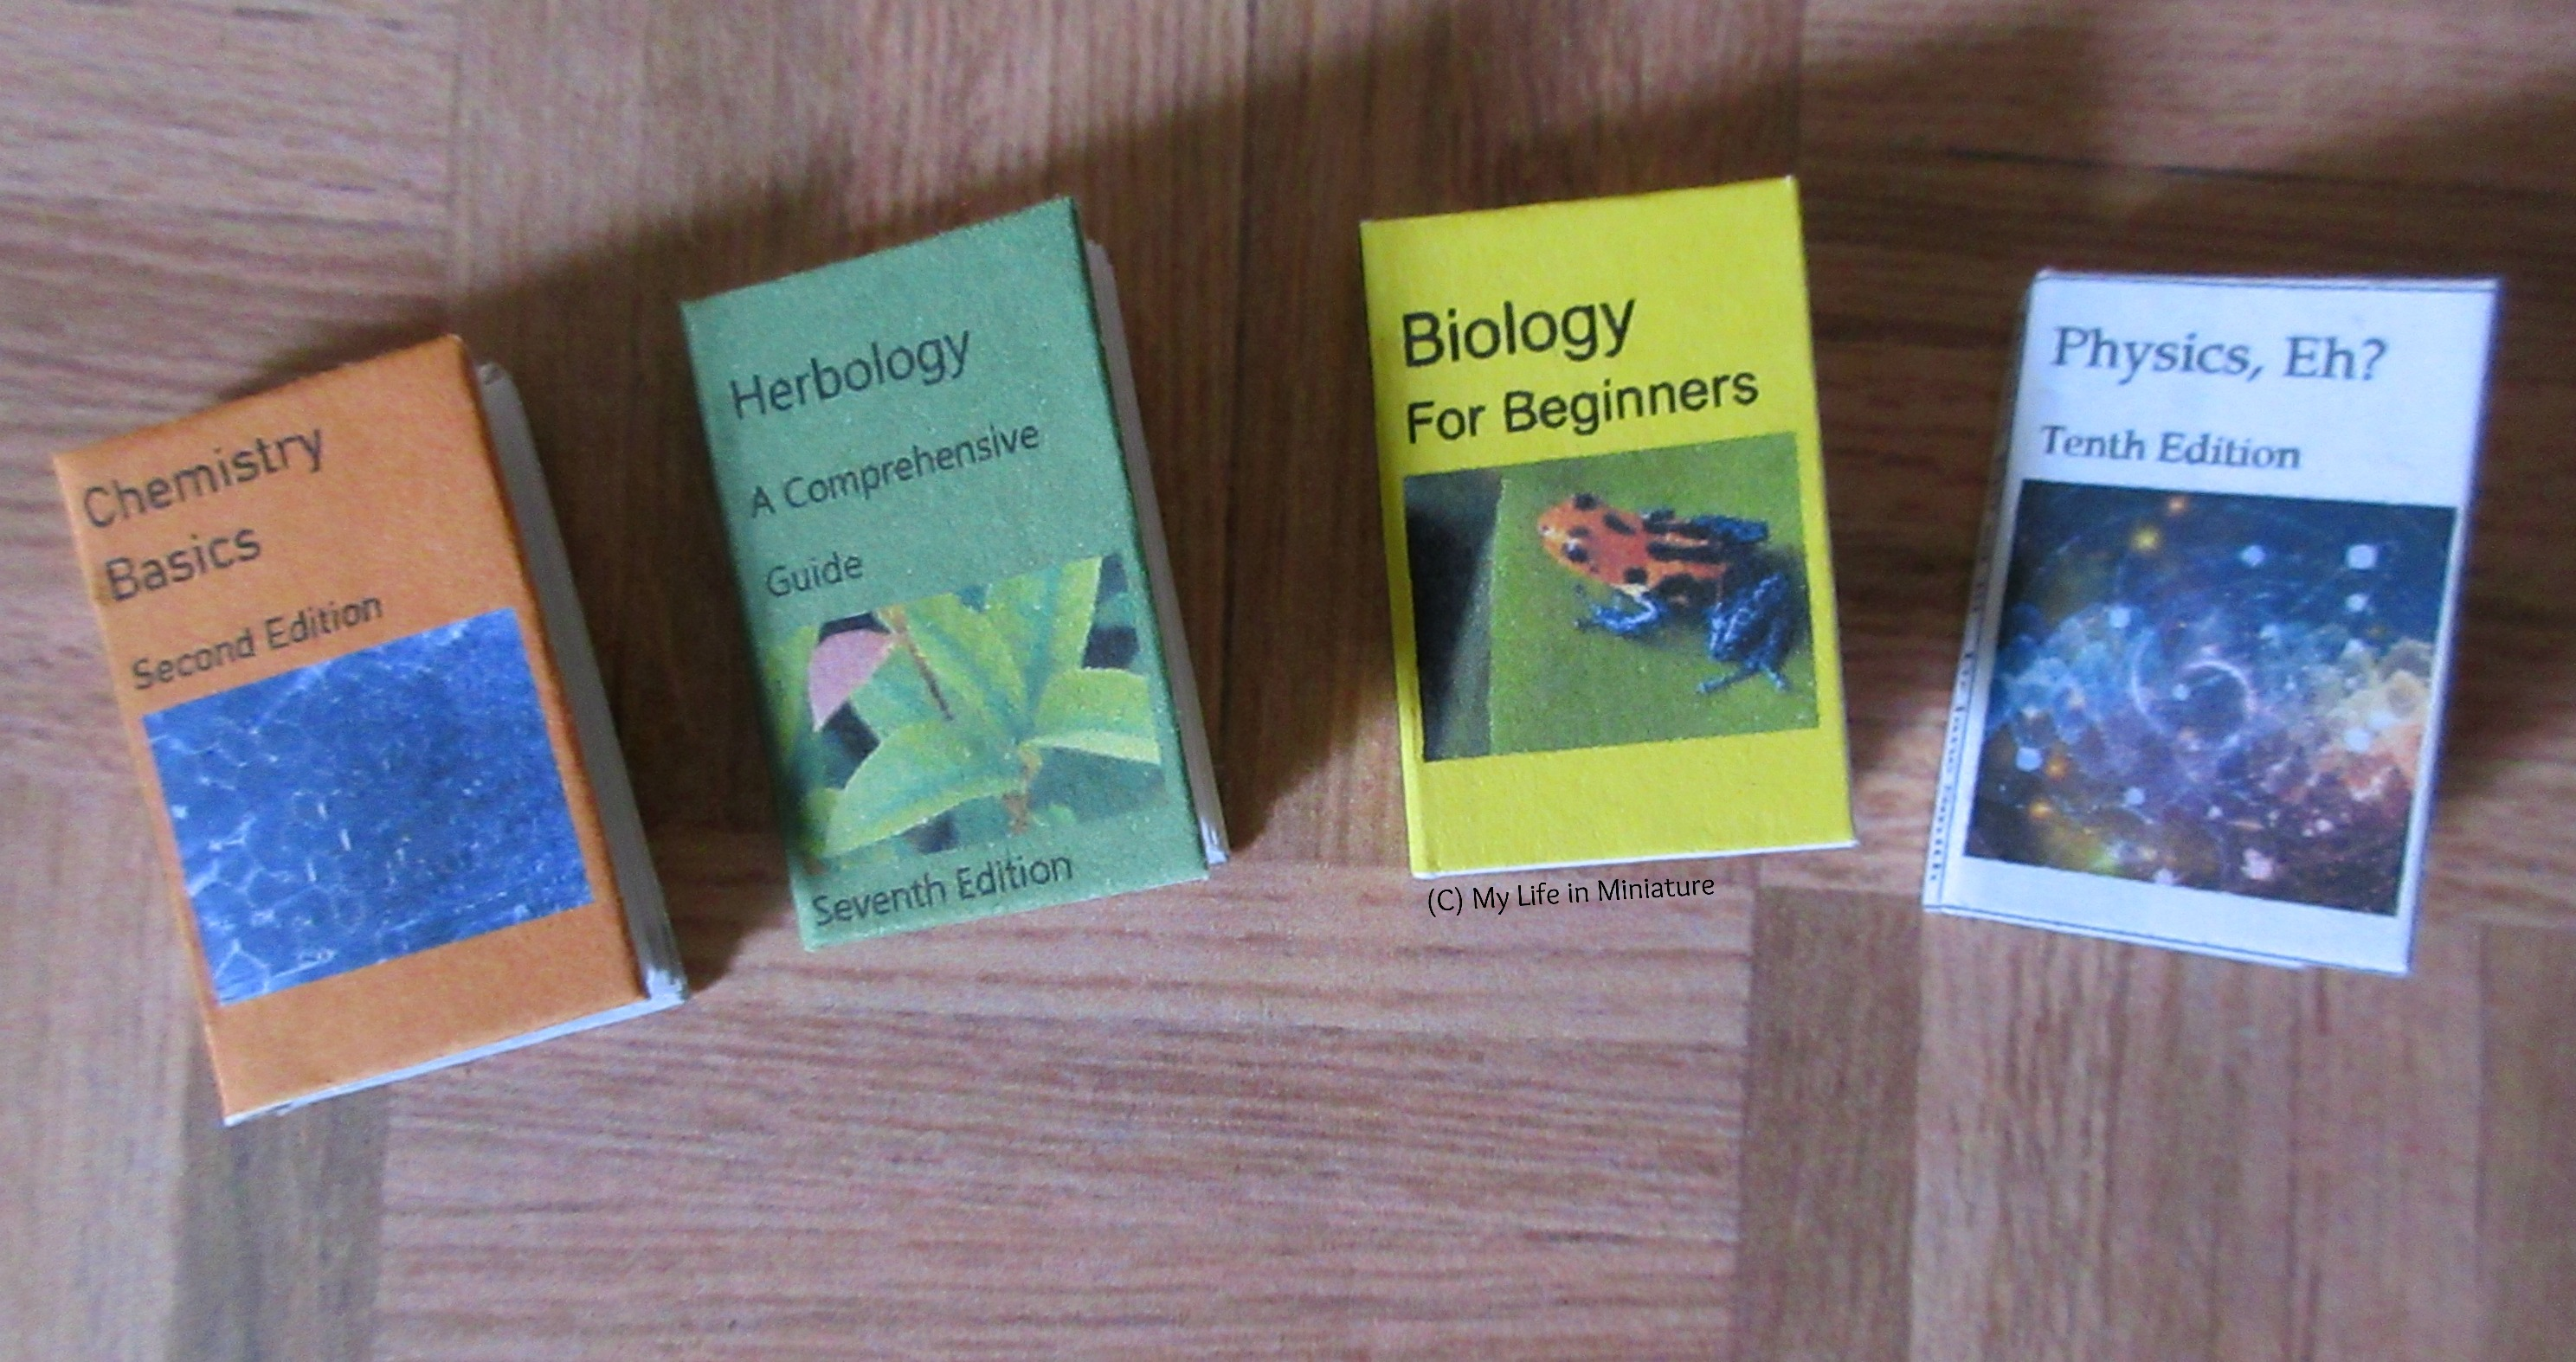 Four textbooks sit on a wood parquet background. Left to right: 'Chemistry Basics' , 2nd edition; 'Herbology: A Comprehensive Guide', 7th edition; 'Biology for Beginners'; and 'Physics, Eh?', 10th edition.